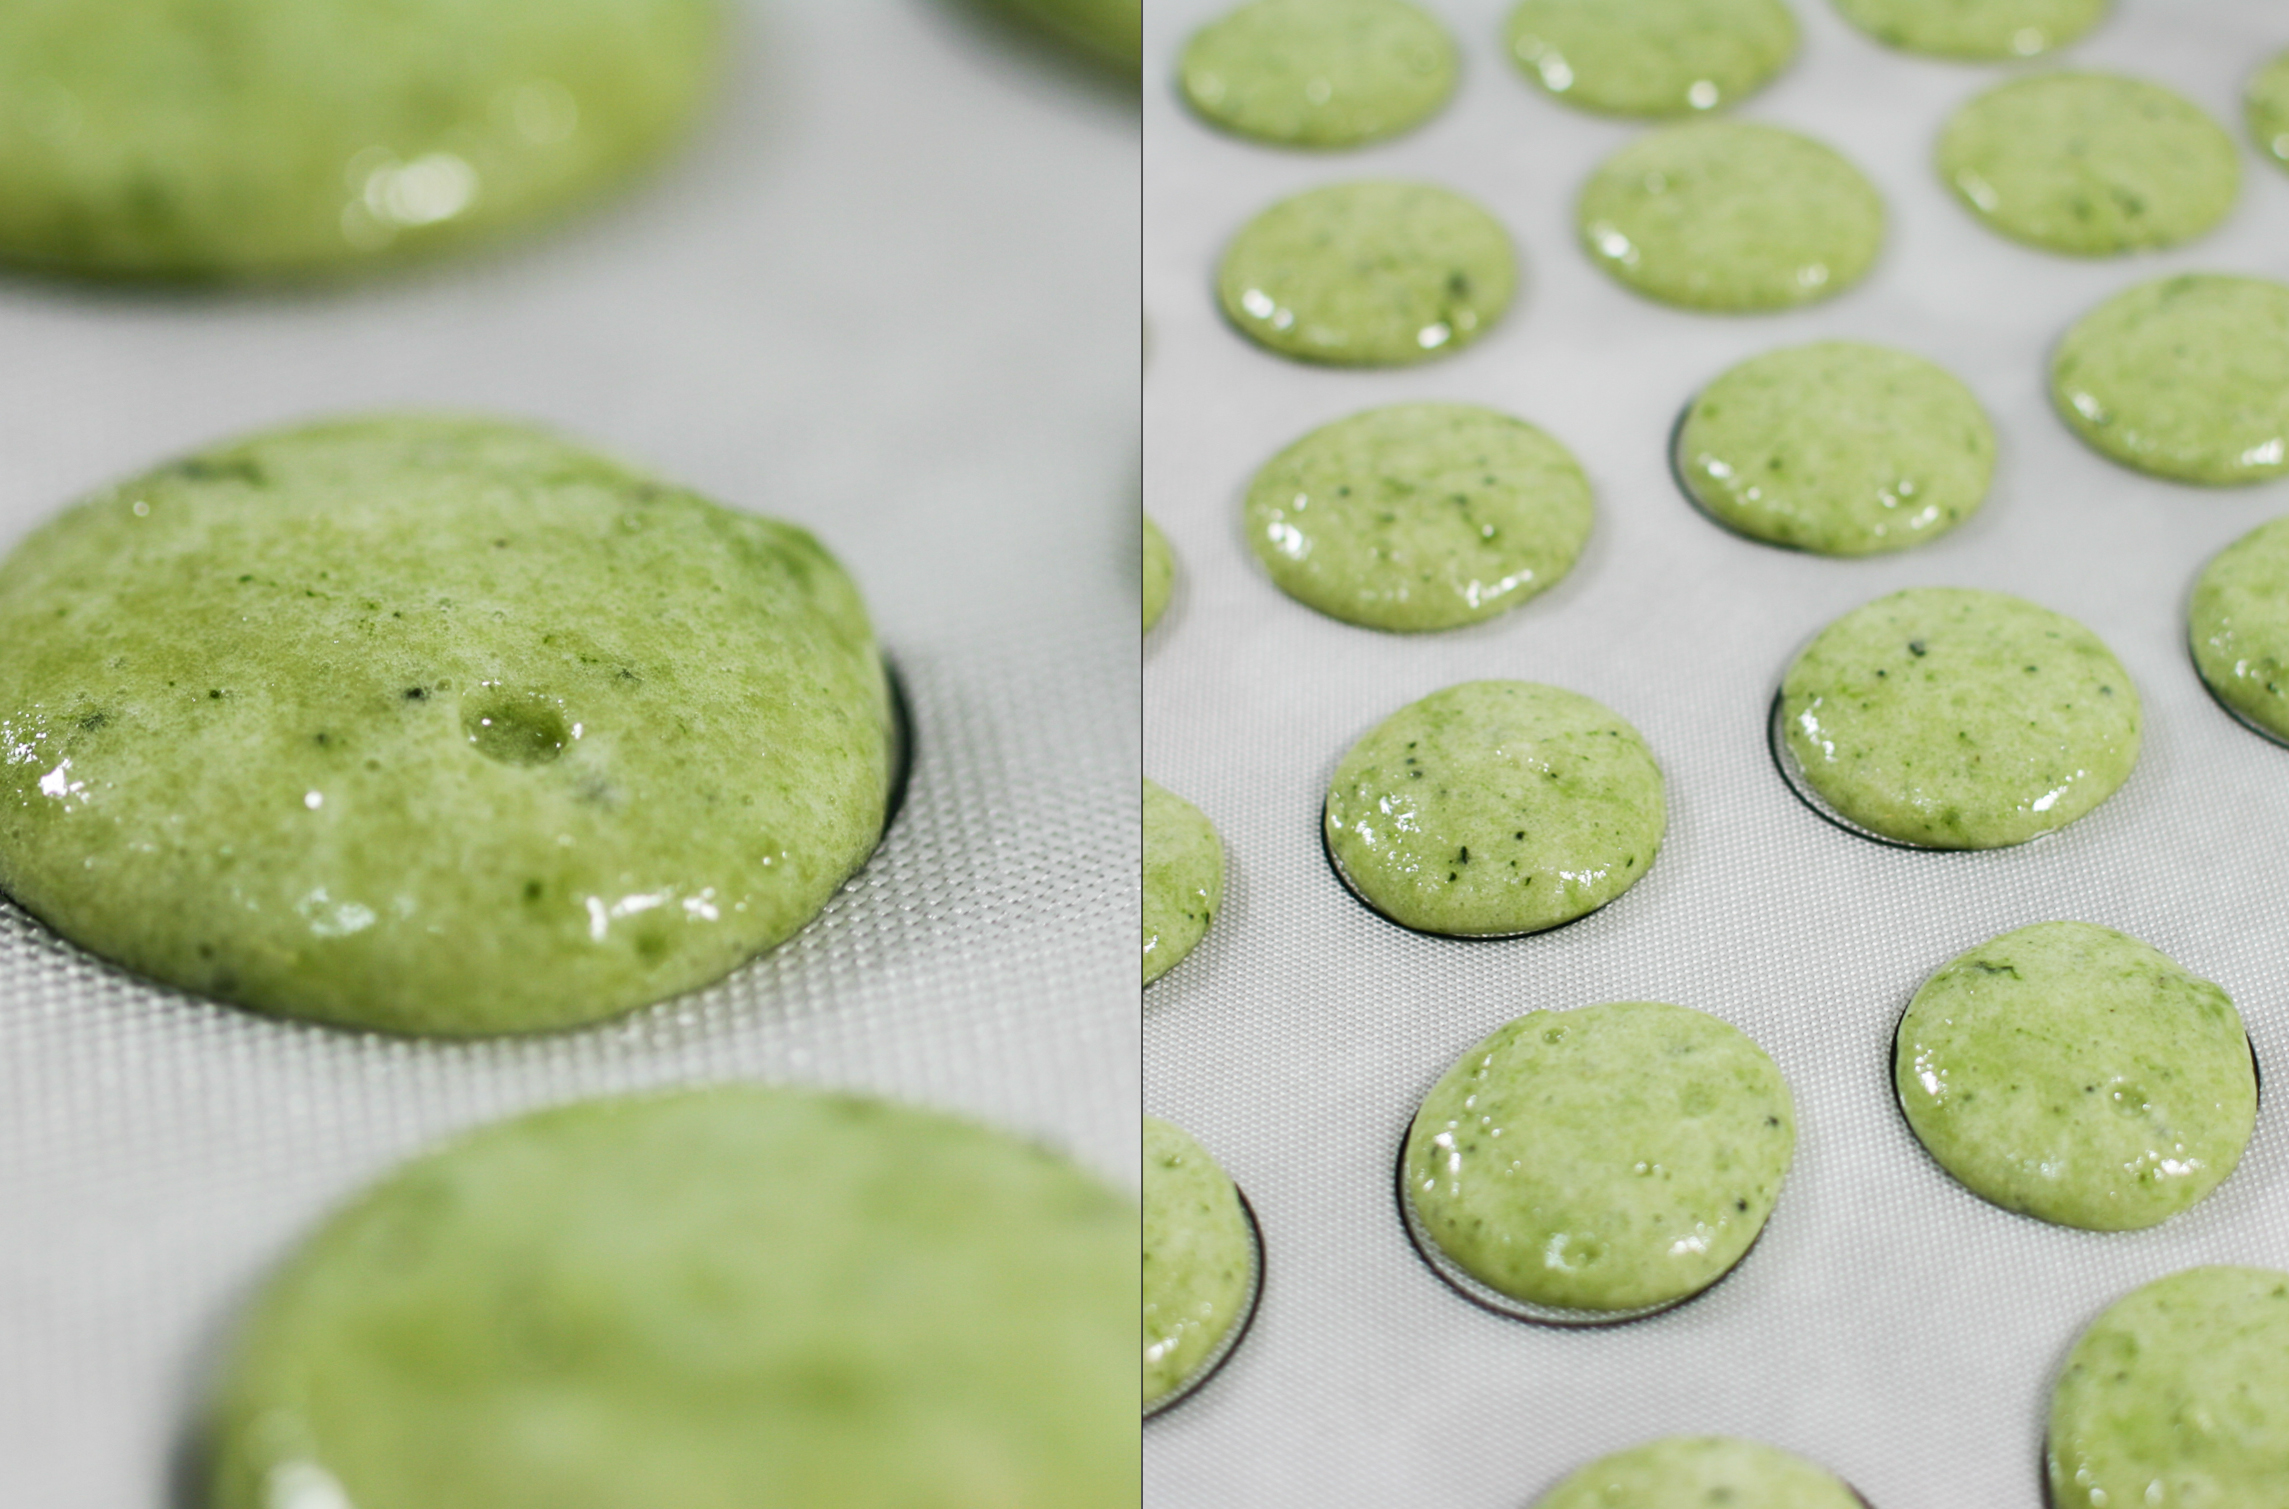 Air bubbles rise to the top of the piped macaron after 3 slams/raps on ...